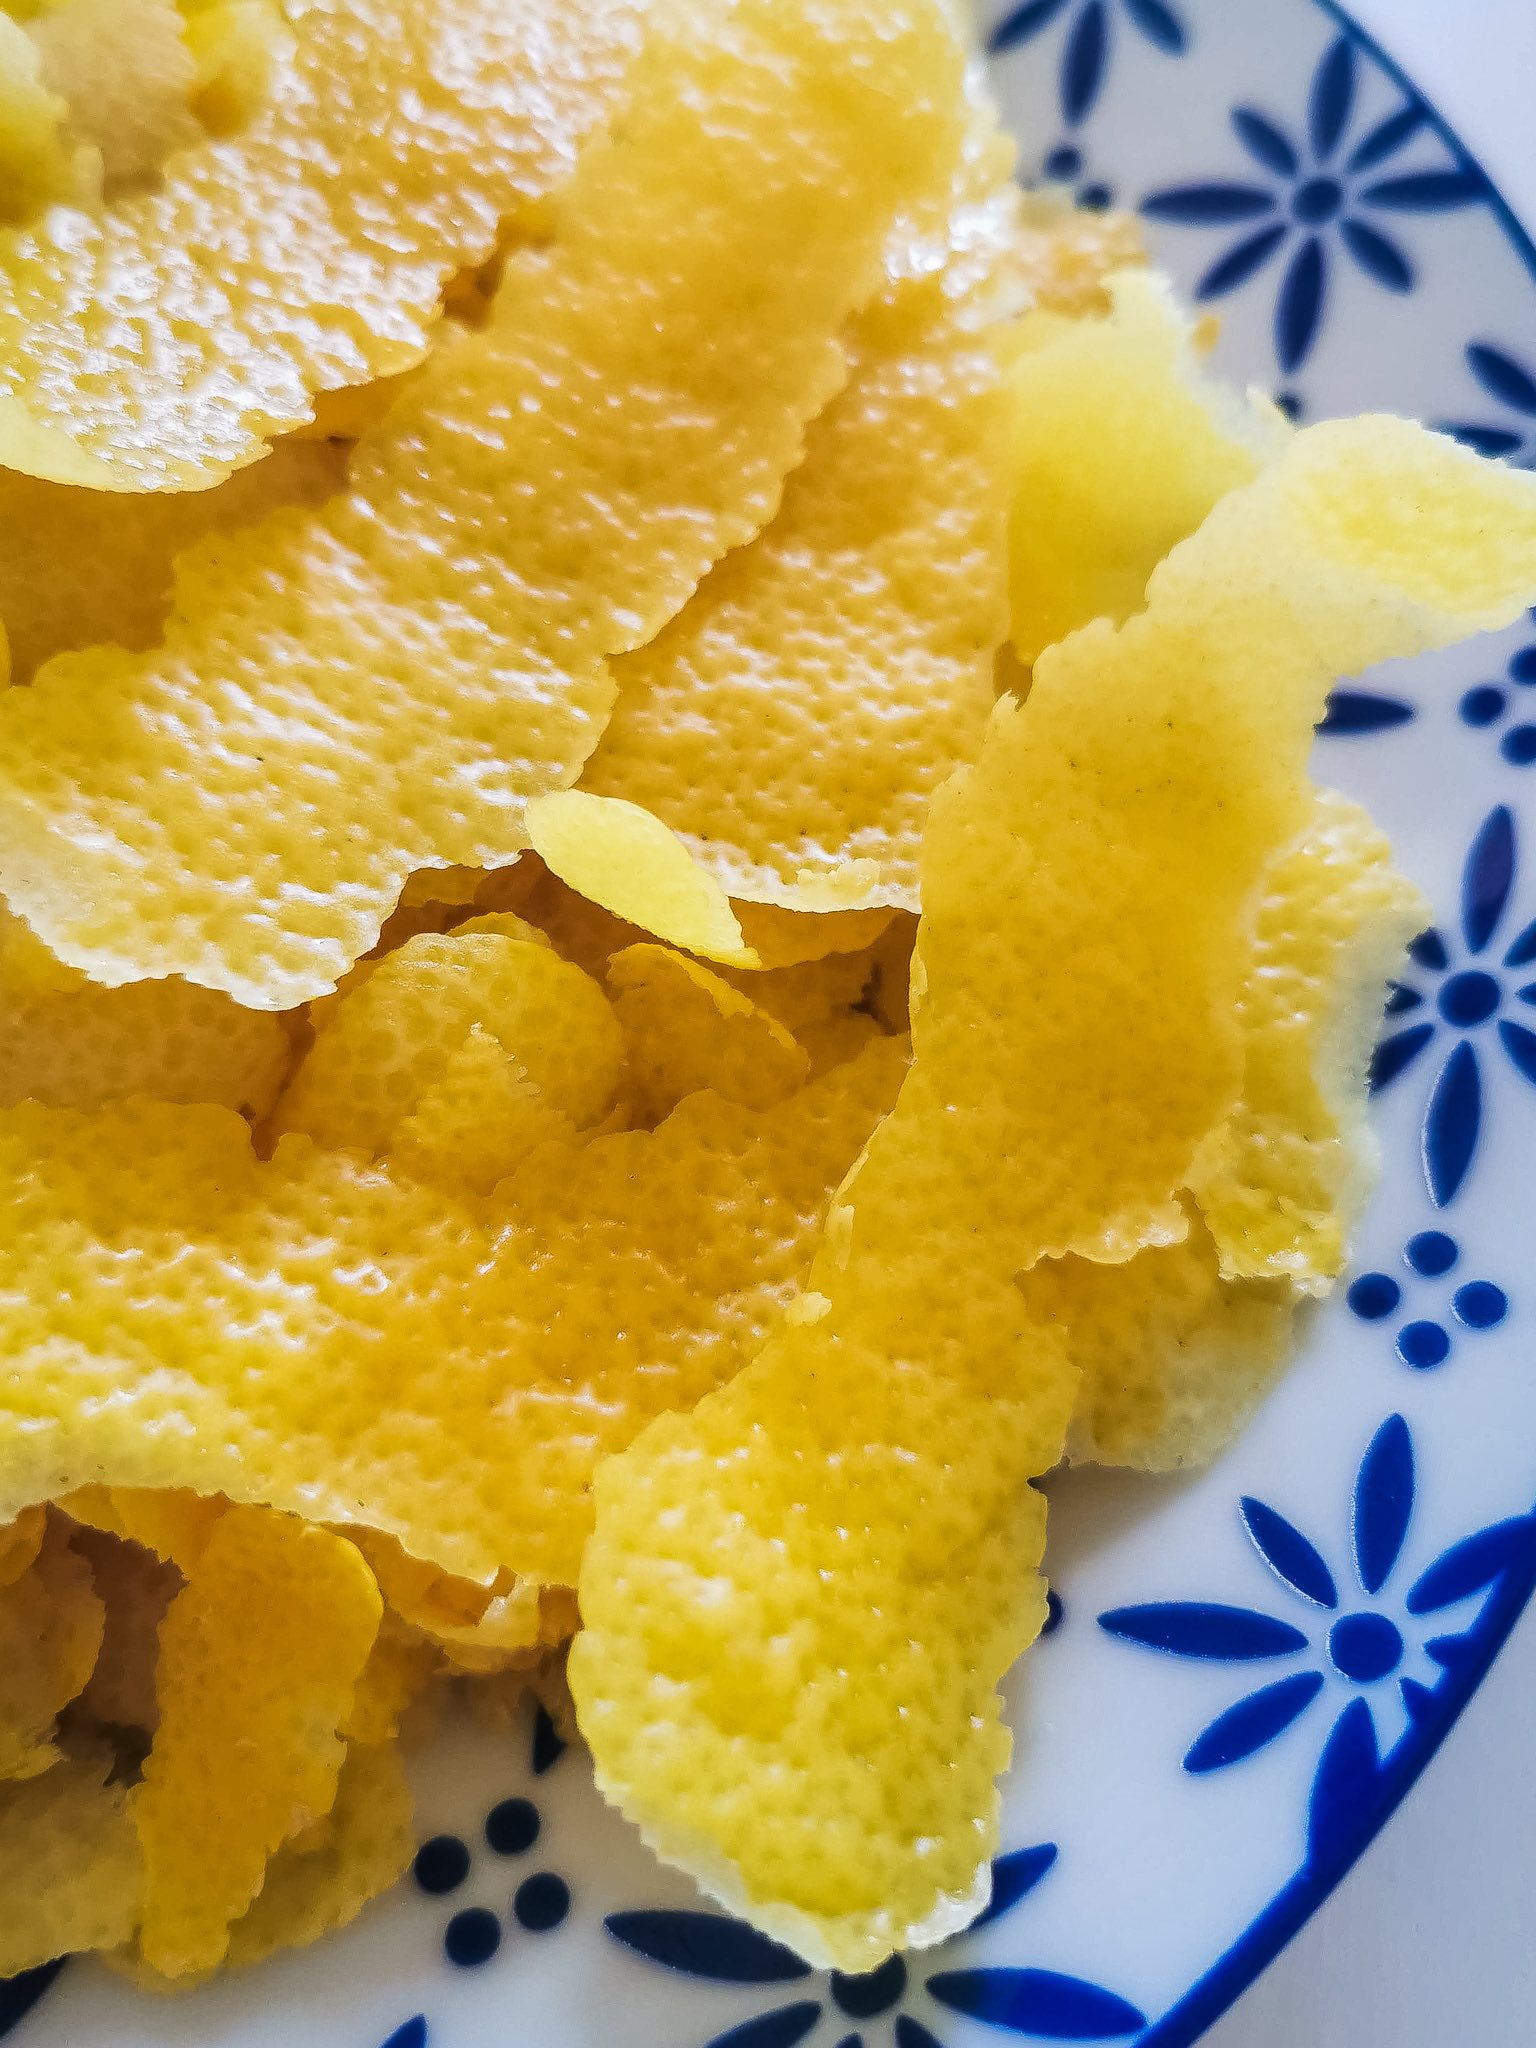 To make limoncello at home, peel the lemons making sure to avoid the white pith